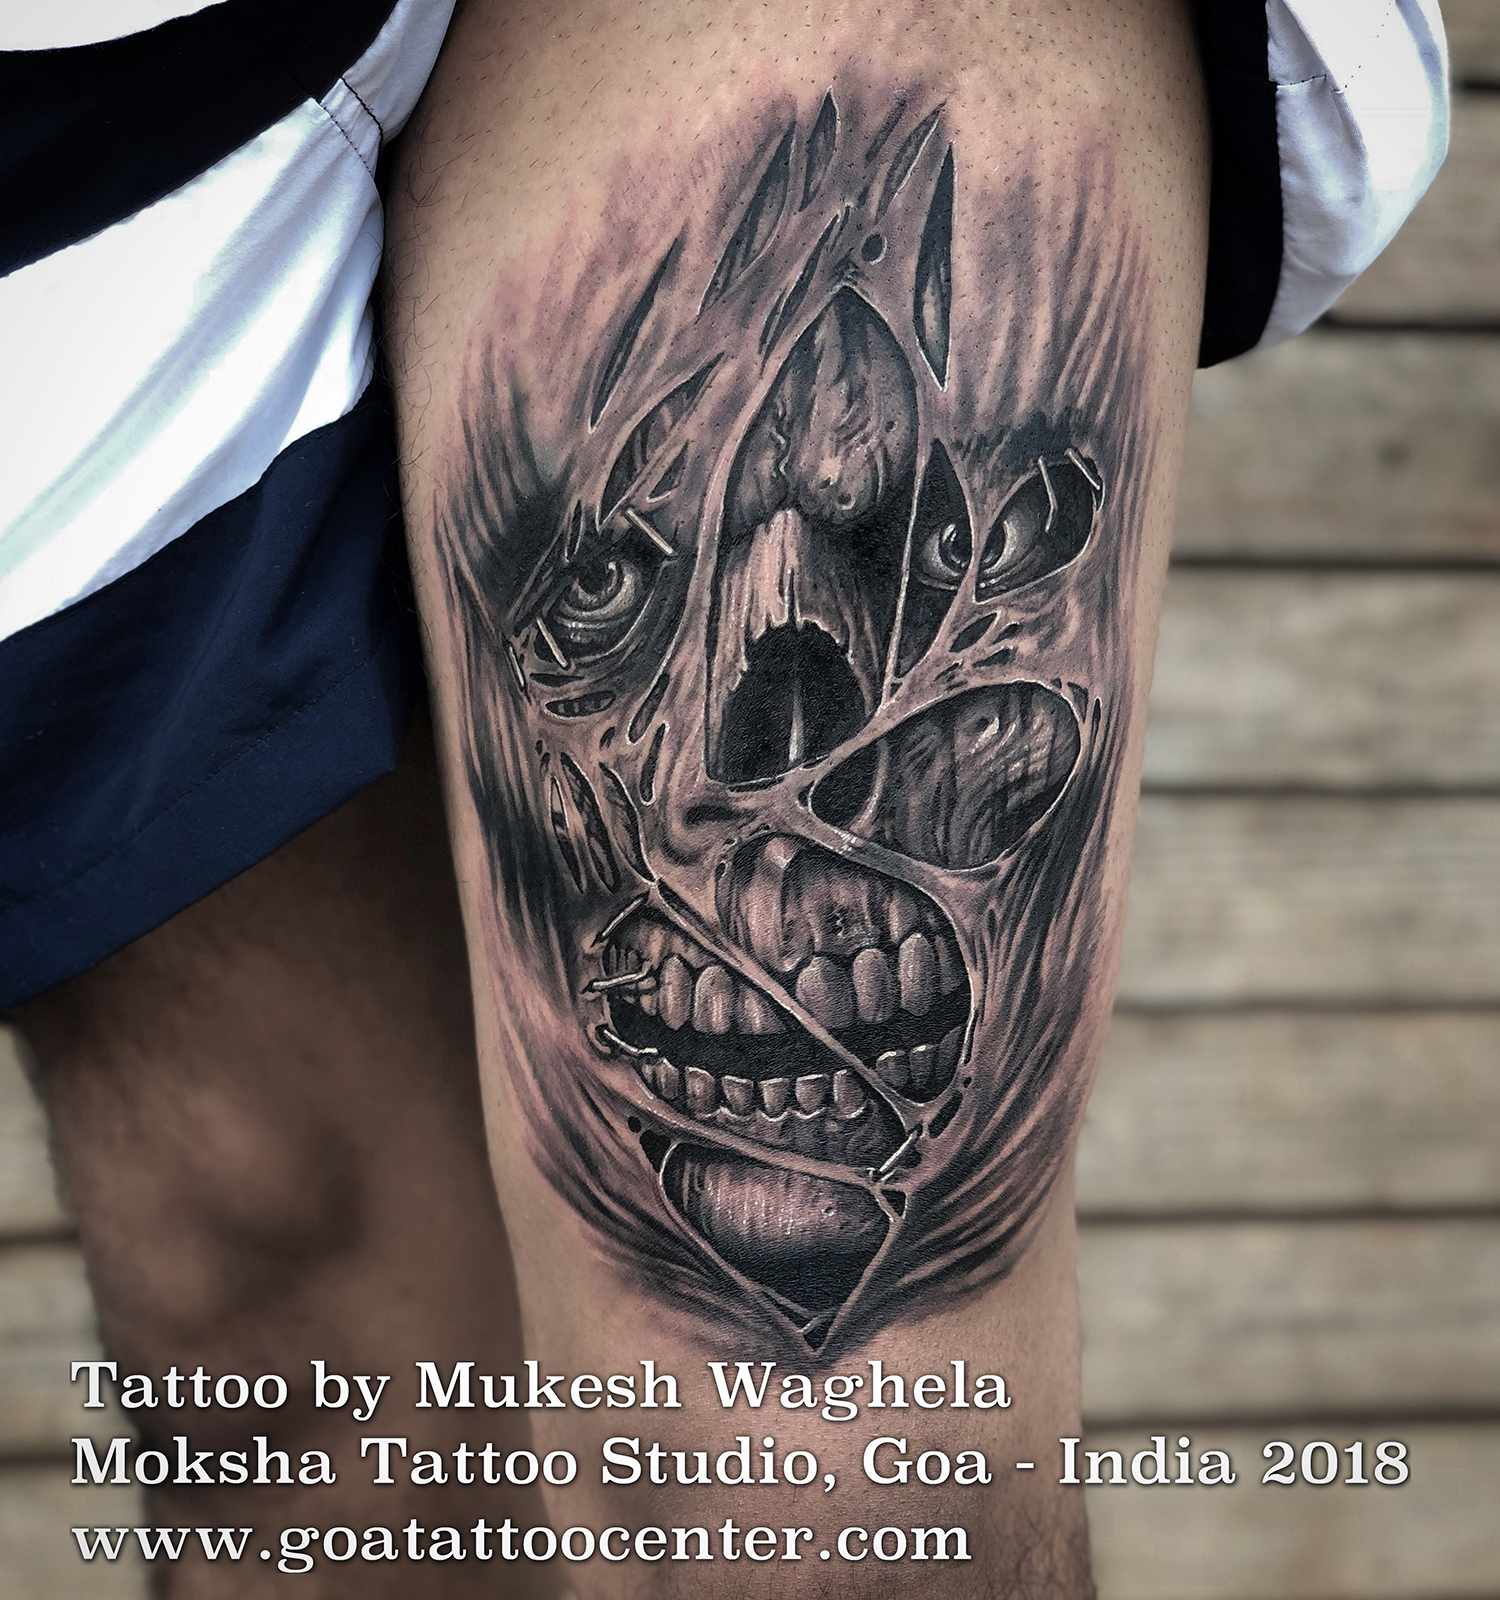 Evil-skull-tattoo-mukesh-waghela-moksha-tattoo-studio